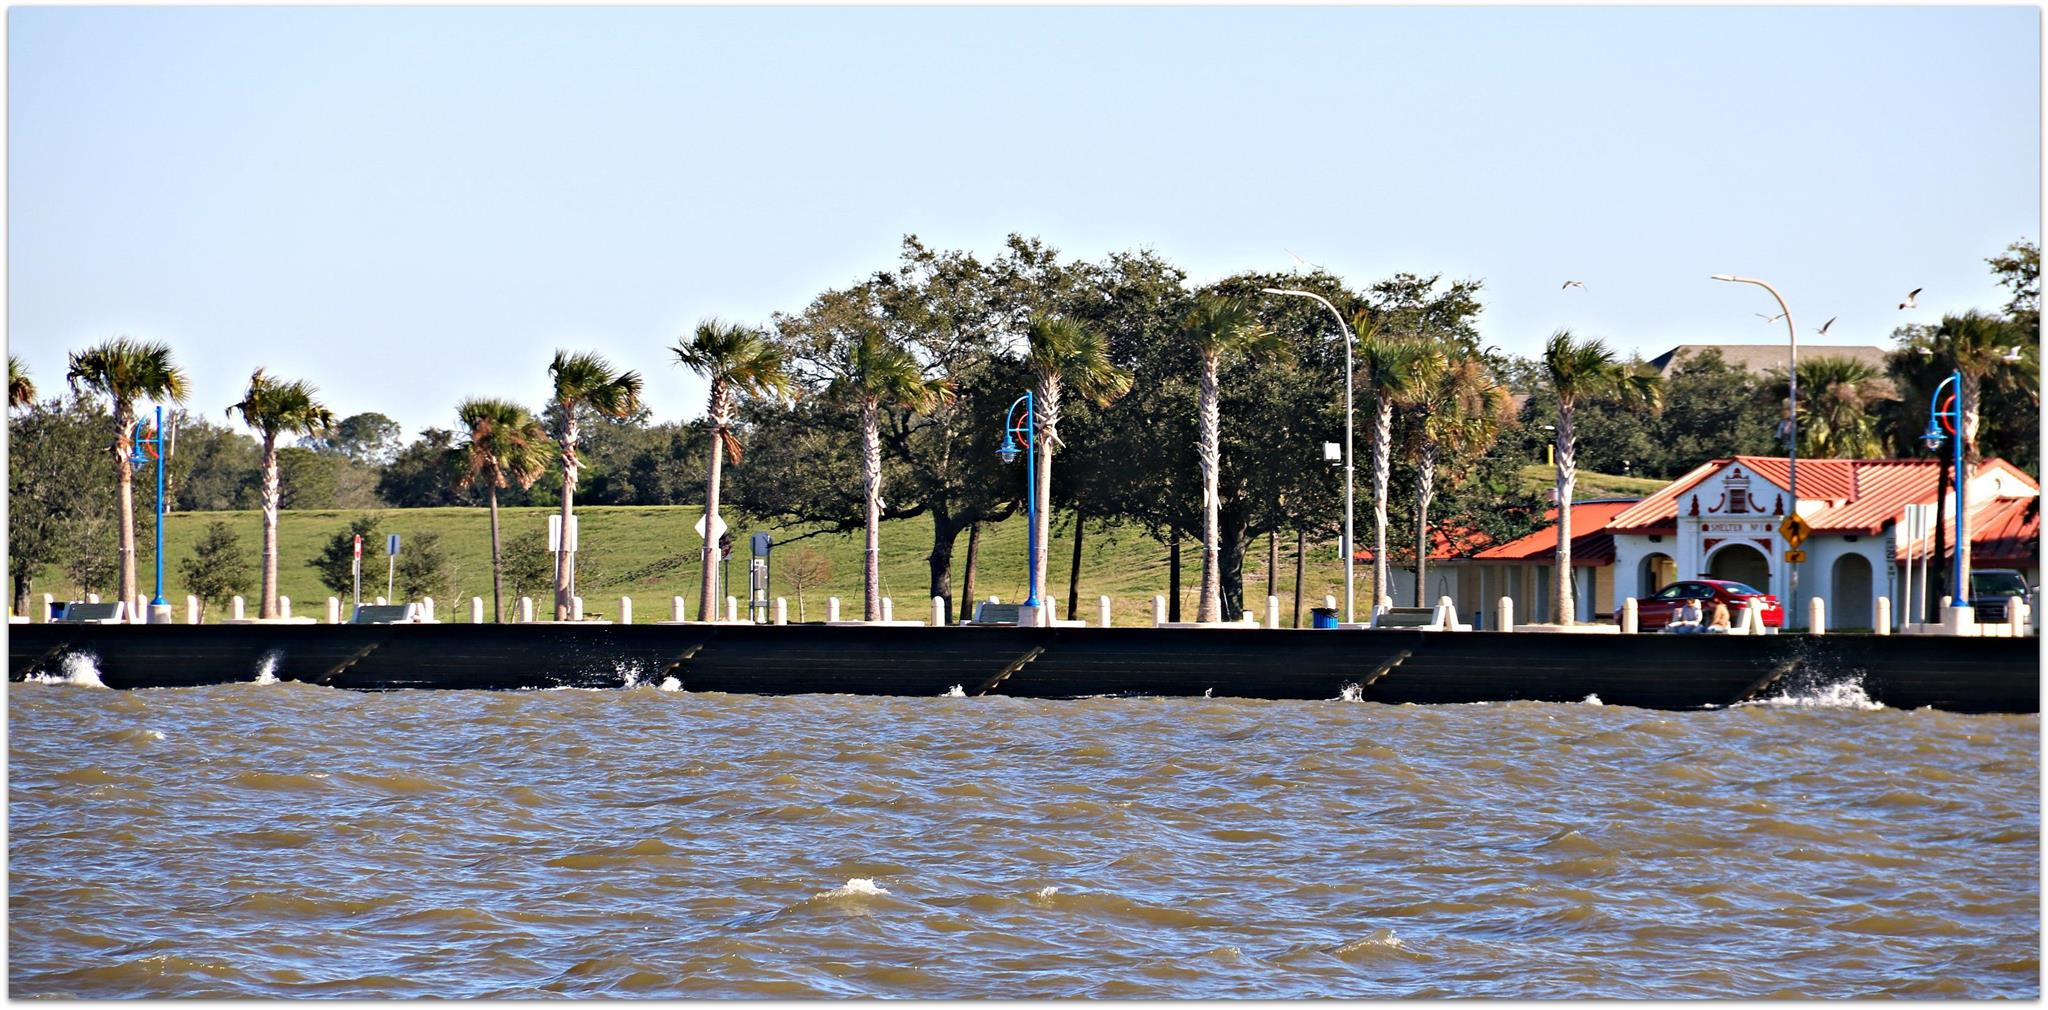 LakefrontSeaWallandPalms.jpg